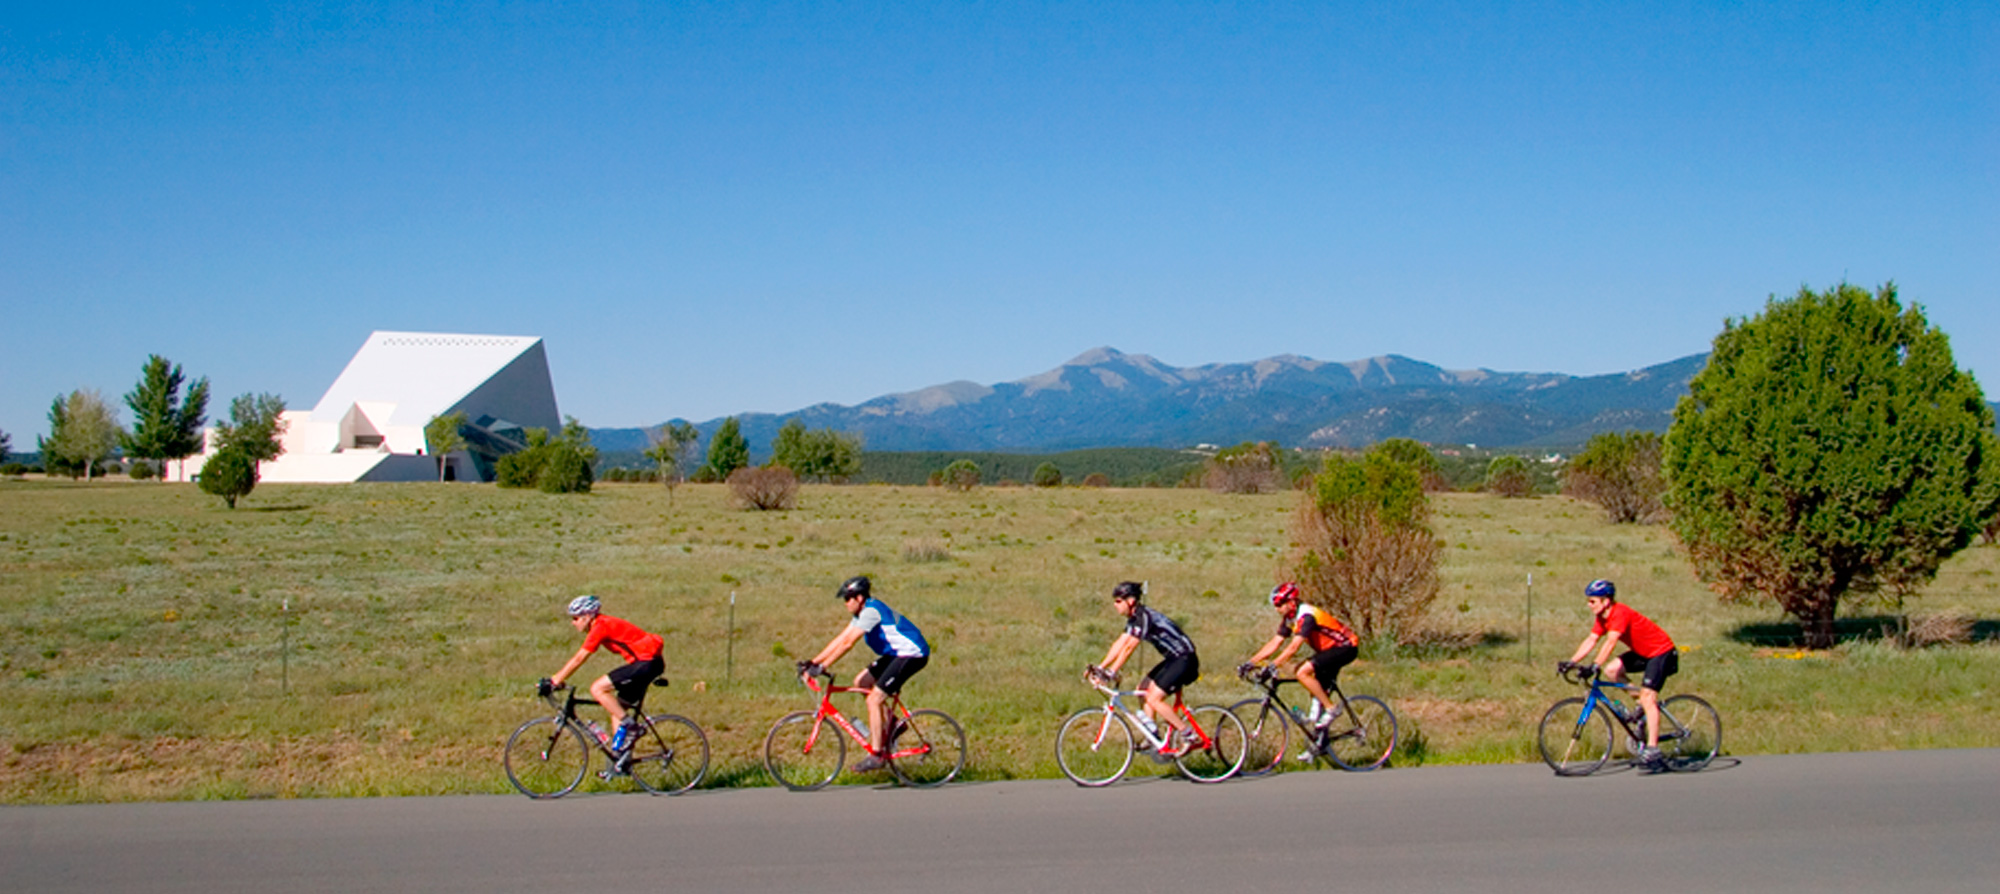 Biking - New Mexico Tourism - Mountain Bike Vacations: Rides